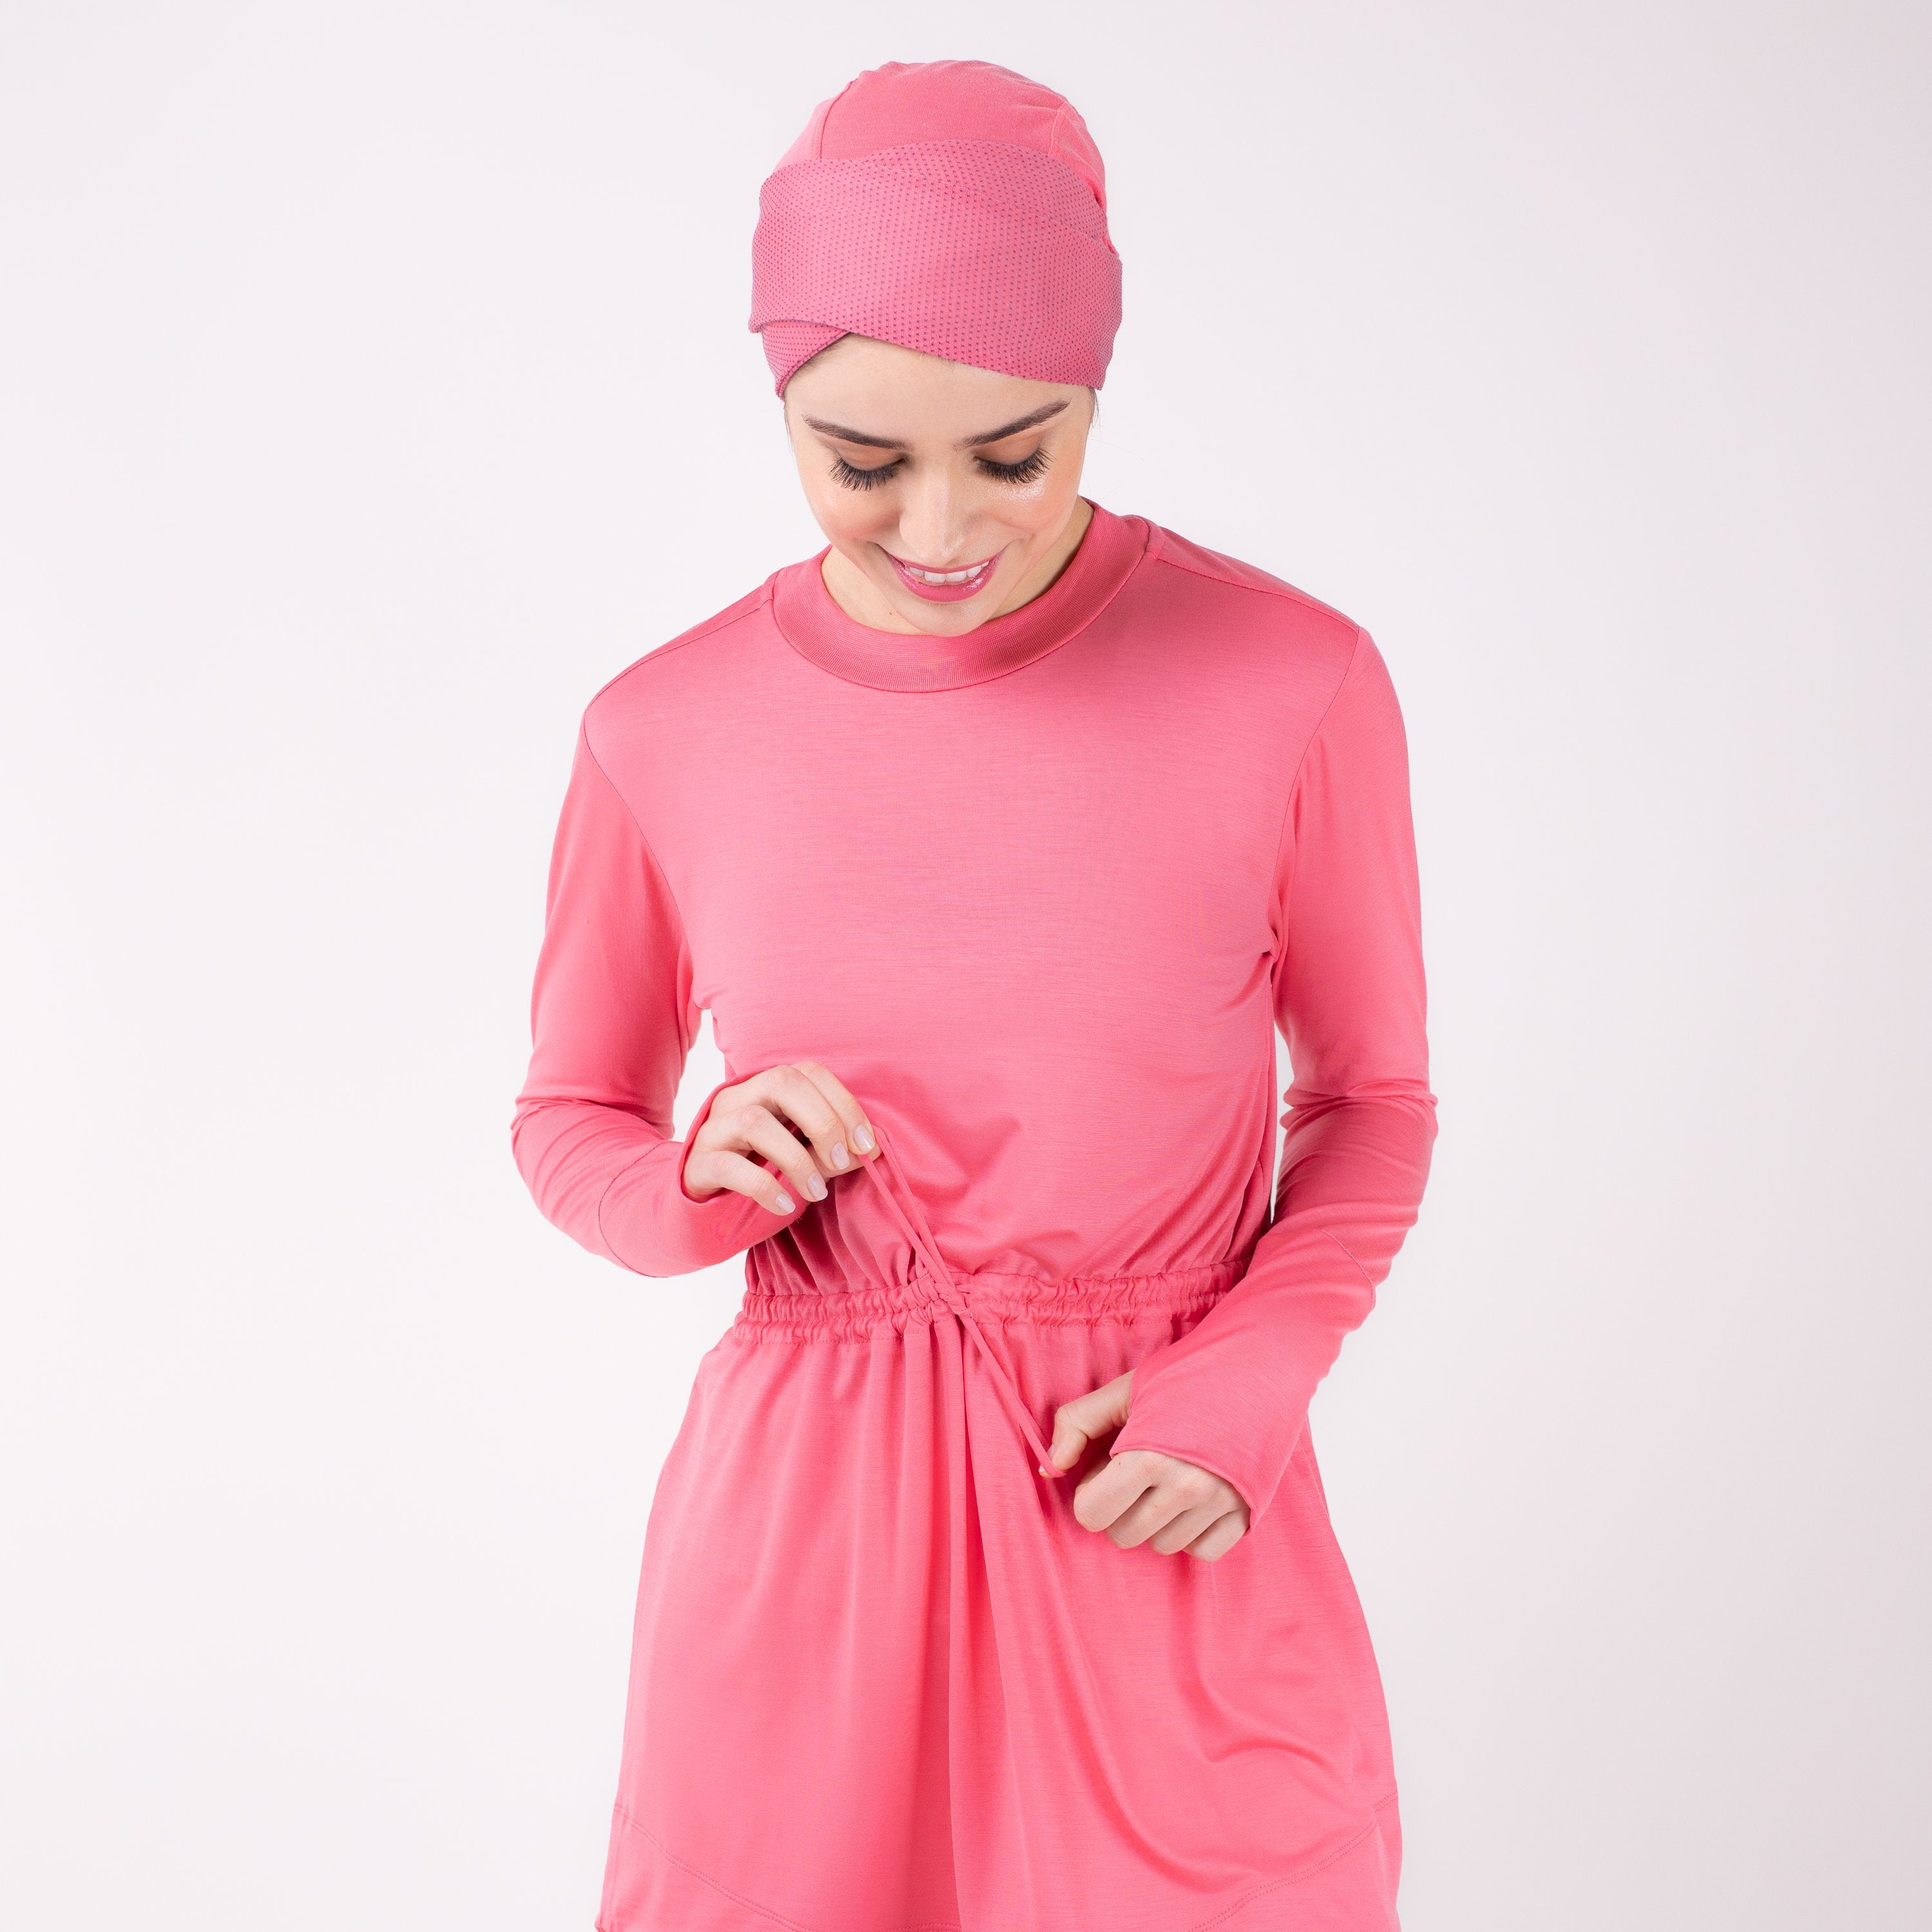 Close up of woman tying the modest, berry pink HAWA drawstring tee shirt with her head bent against a white back drop.